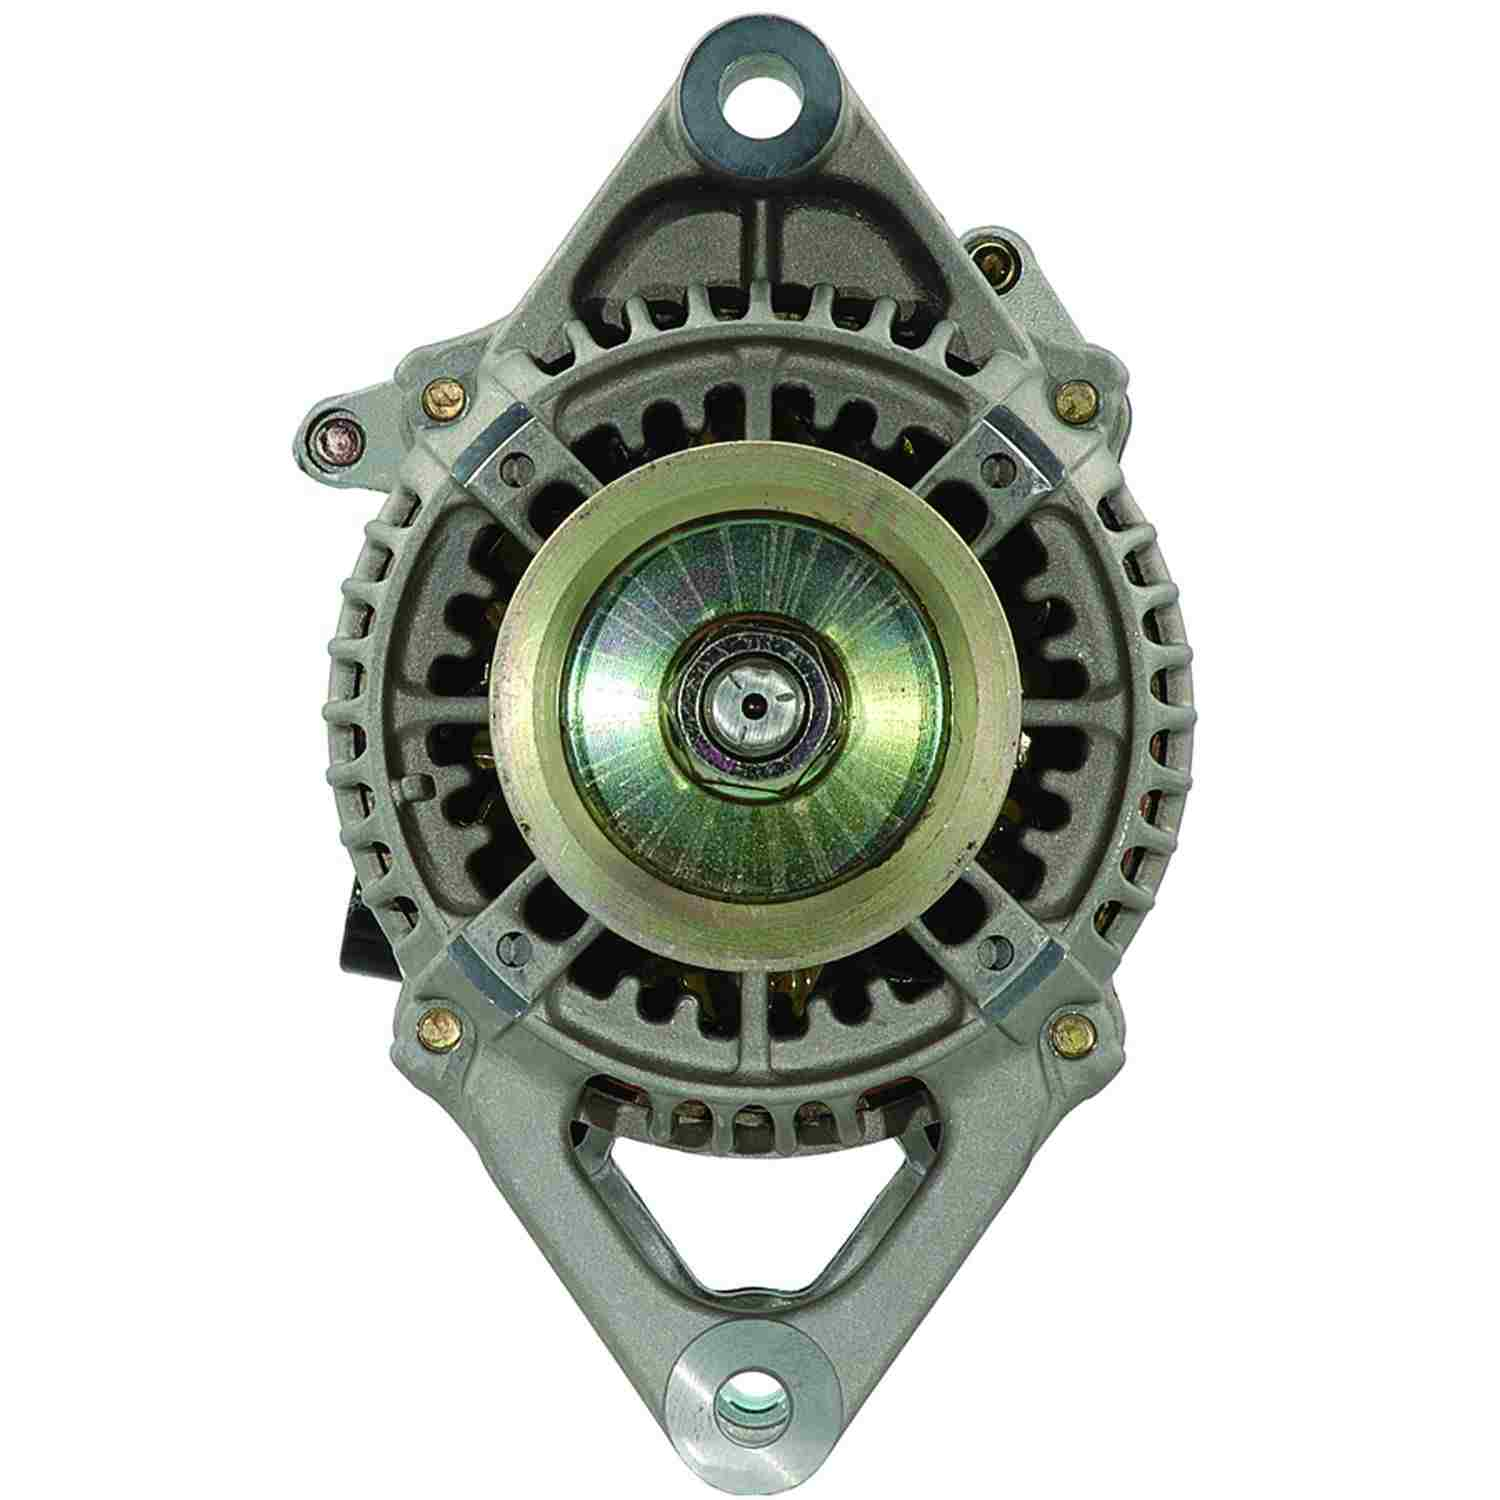 ACDELCO GOLD/PROFESSIONAL - Alternator - DCC 335-1174